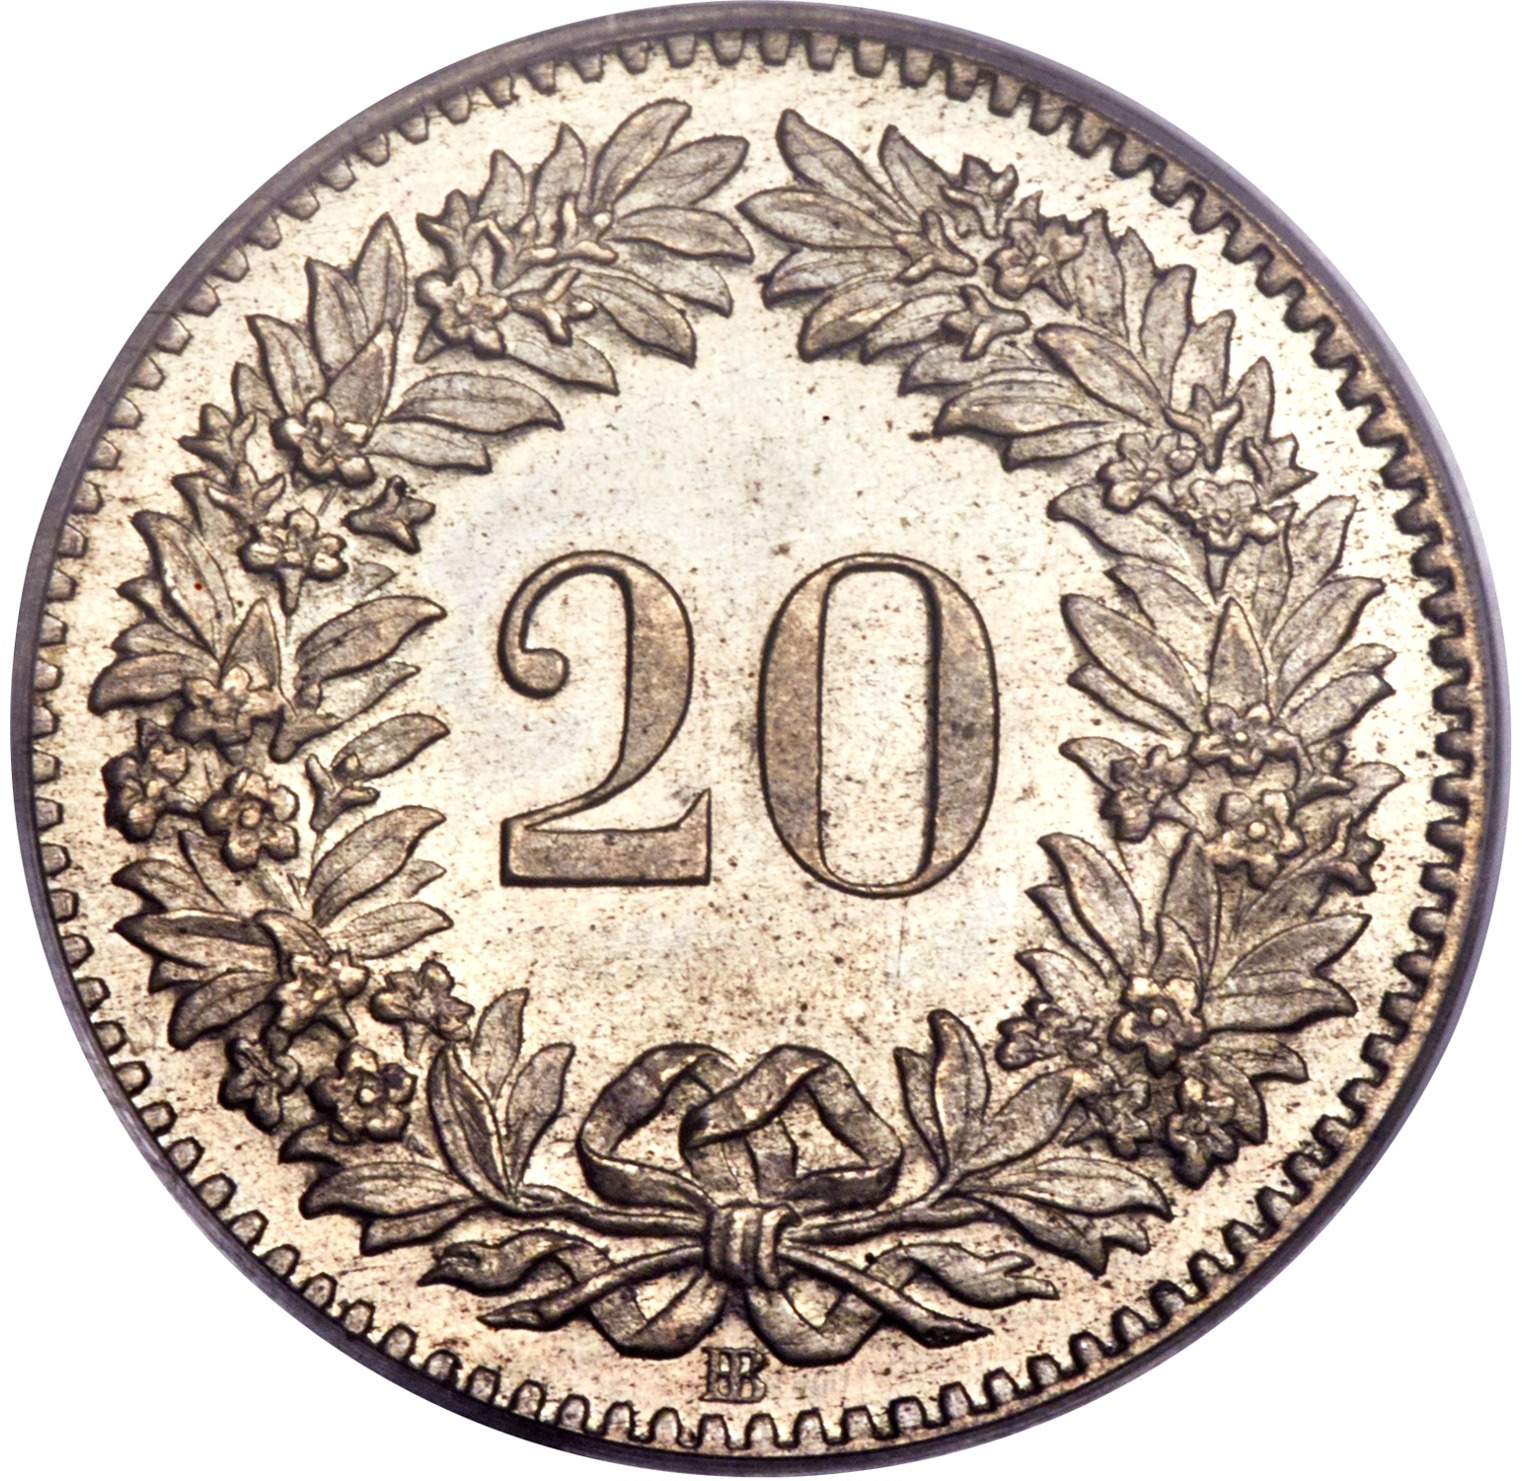 Twenty Centimes (Rappen) 1851: Photo Coin, Switzerland, 20 Rappen 1851